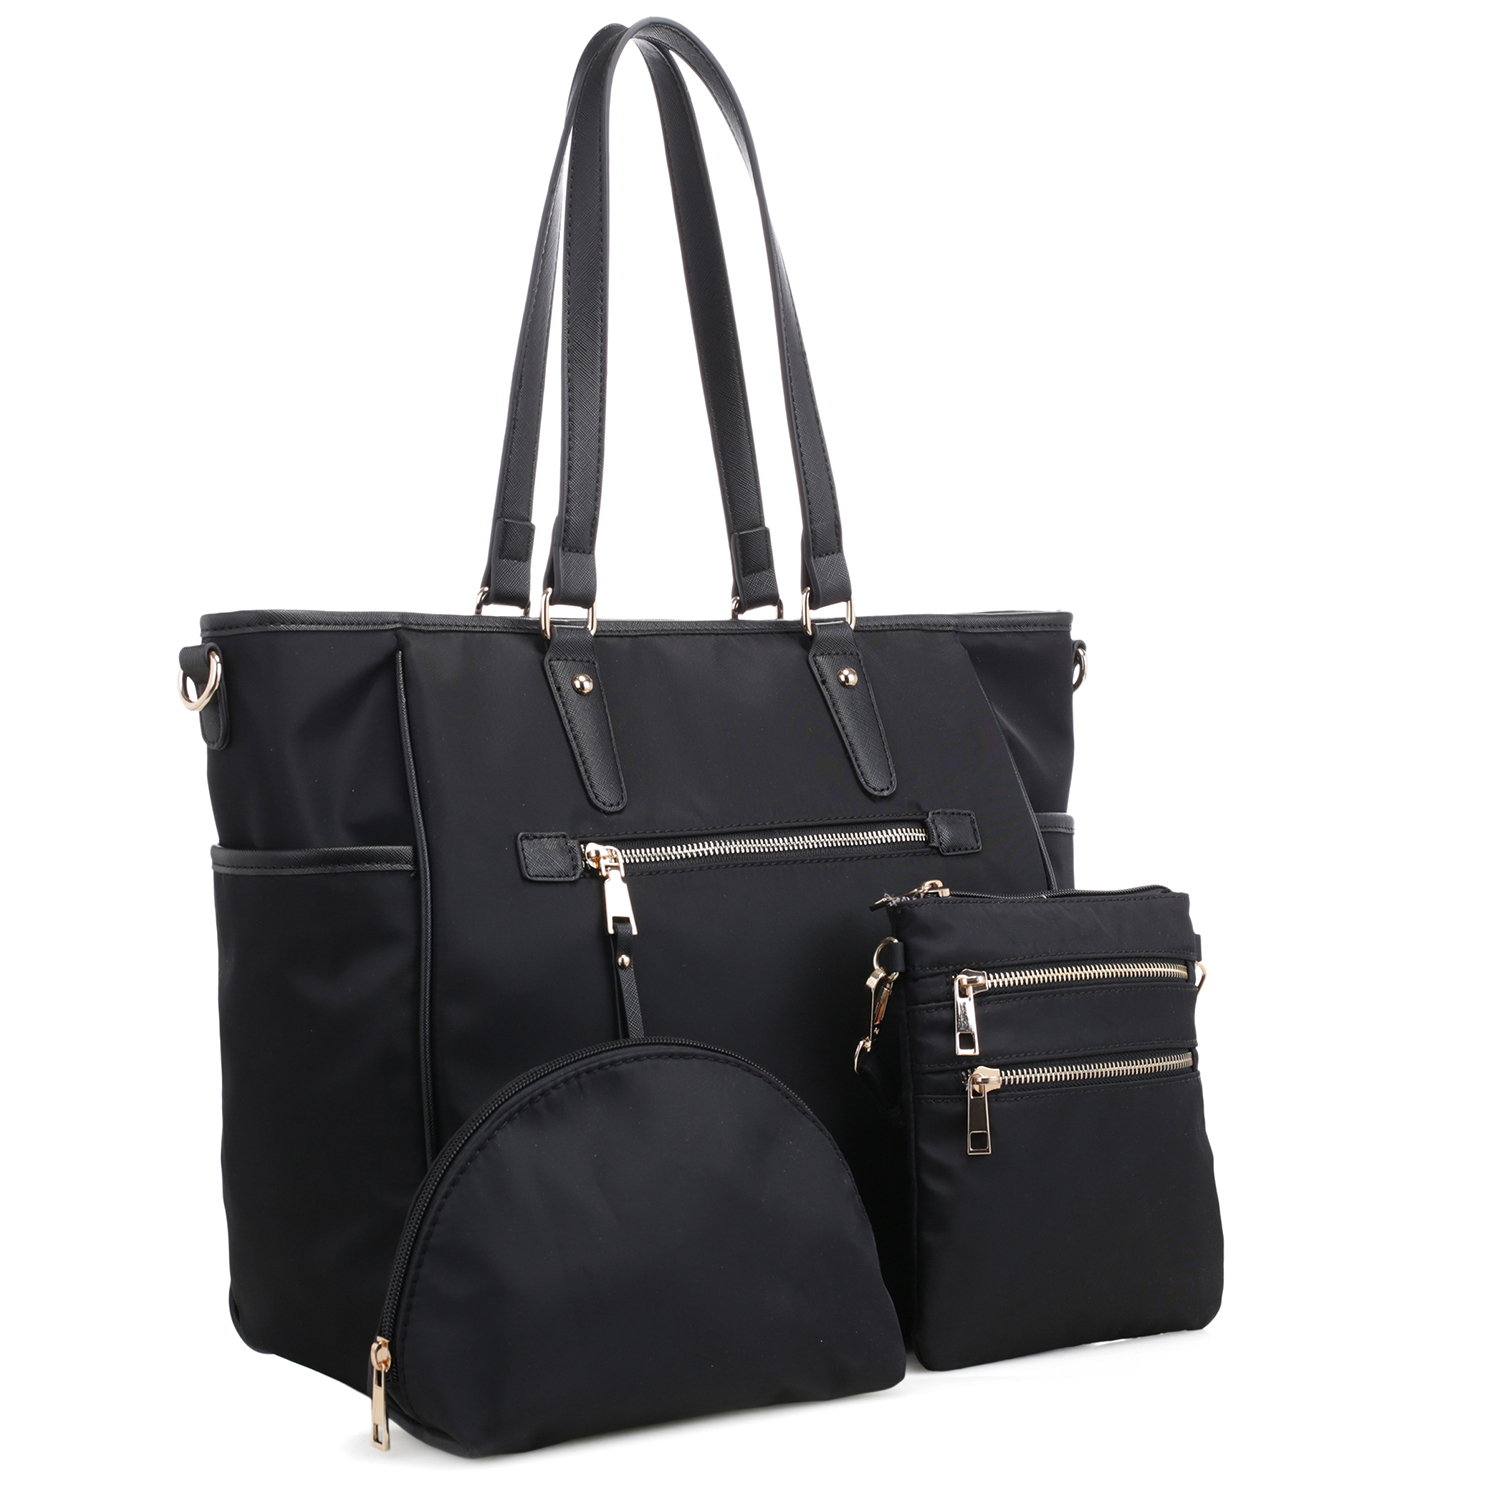 3-in-1 Large Classic Nylon Tote Set with Free Matching Mini Messenger Bag and Accessory Pouch